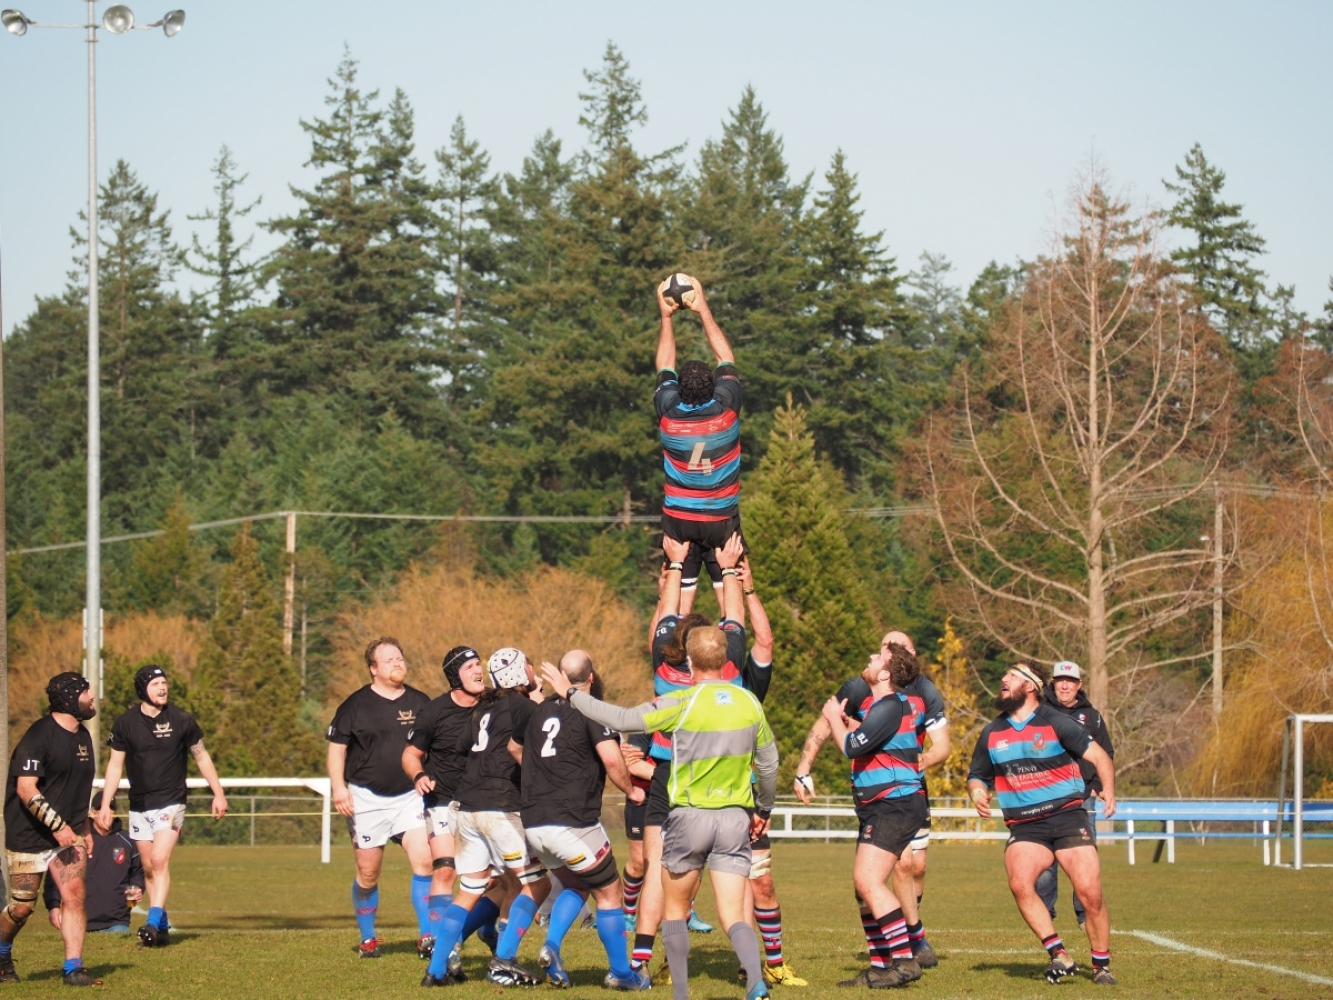 It's Rugby - Must Be Saturday!